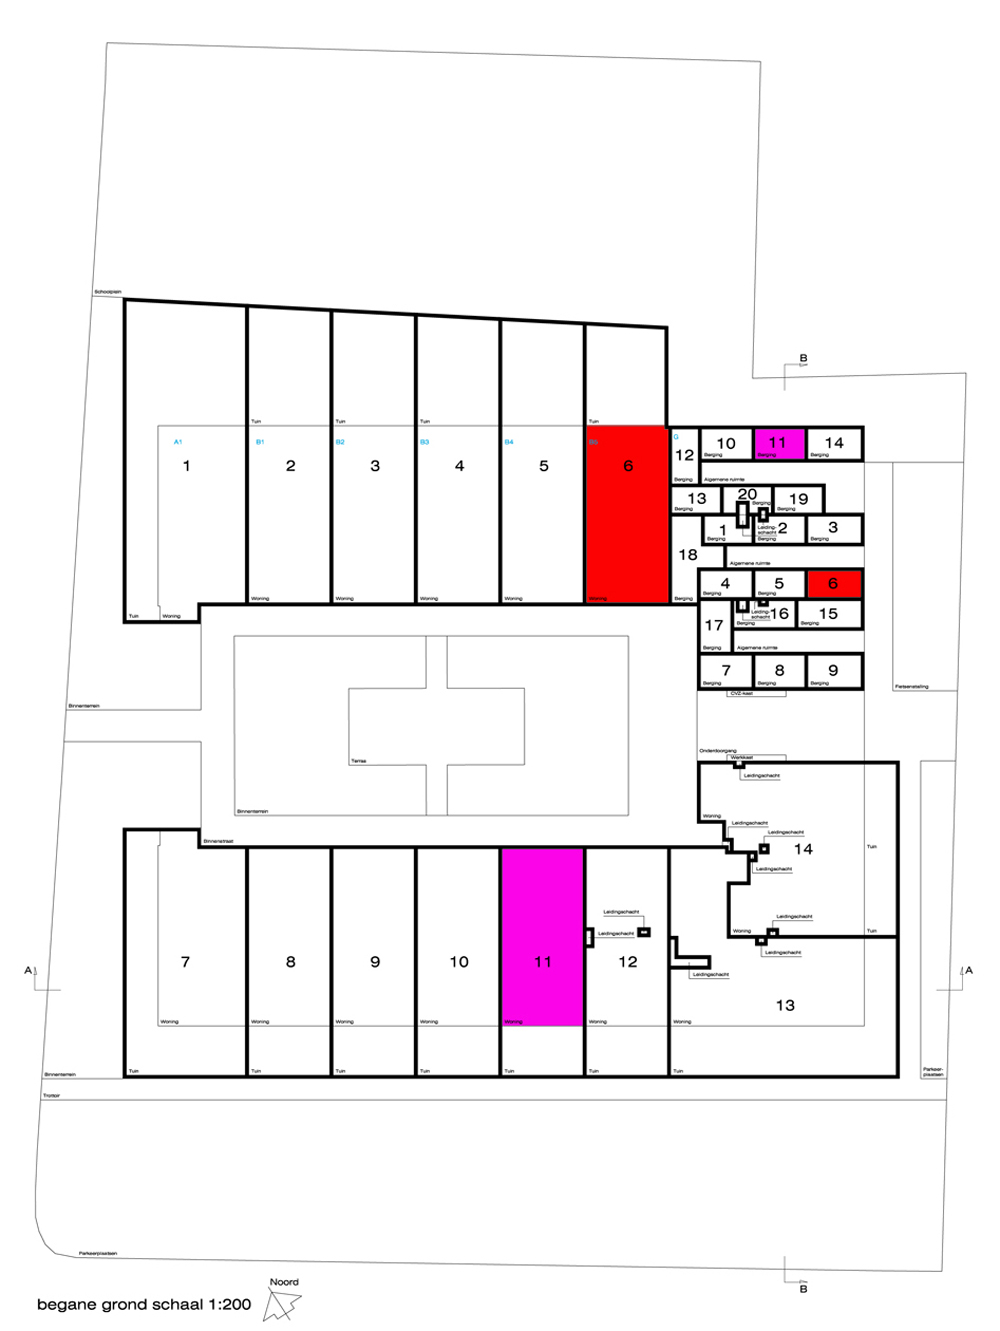 A 400 sq m shared courtyard garden is surrounded by the homes. The small boxes in the top right of the plan are storage units assigned to each household